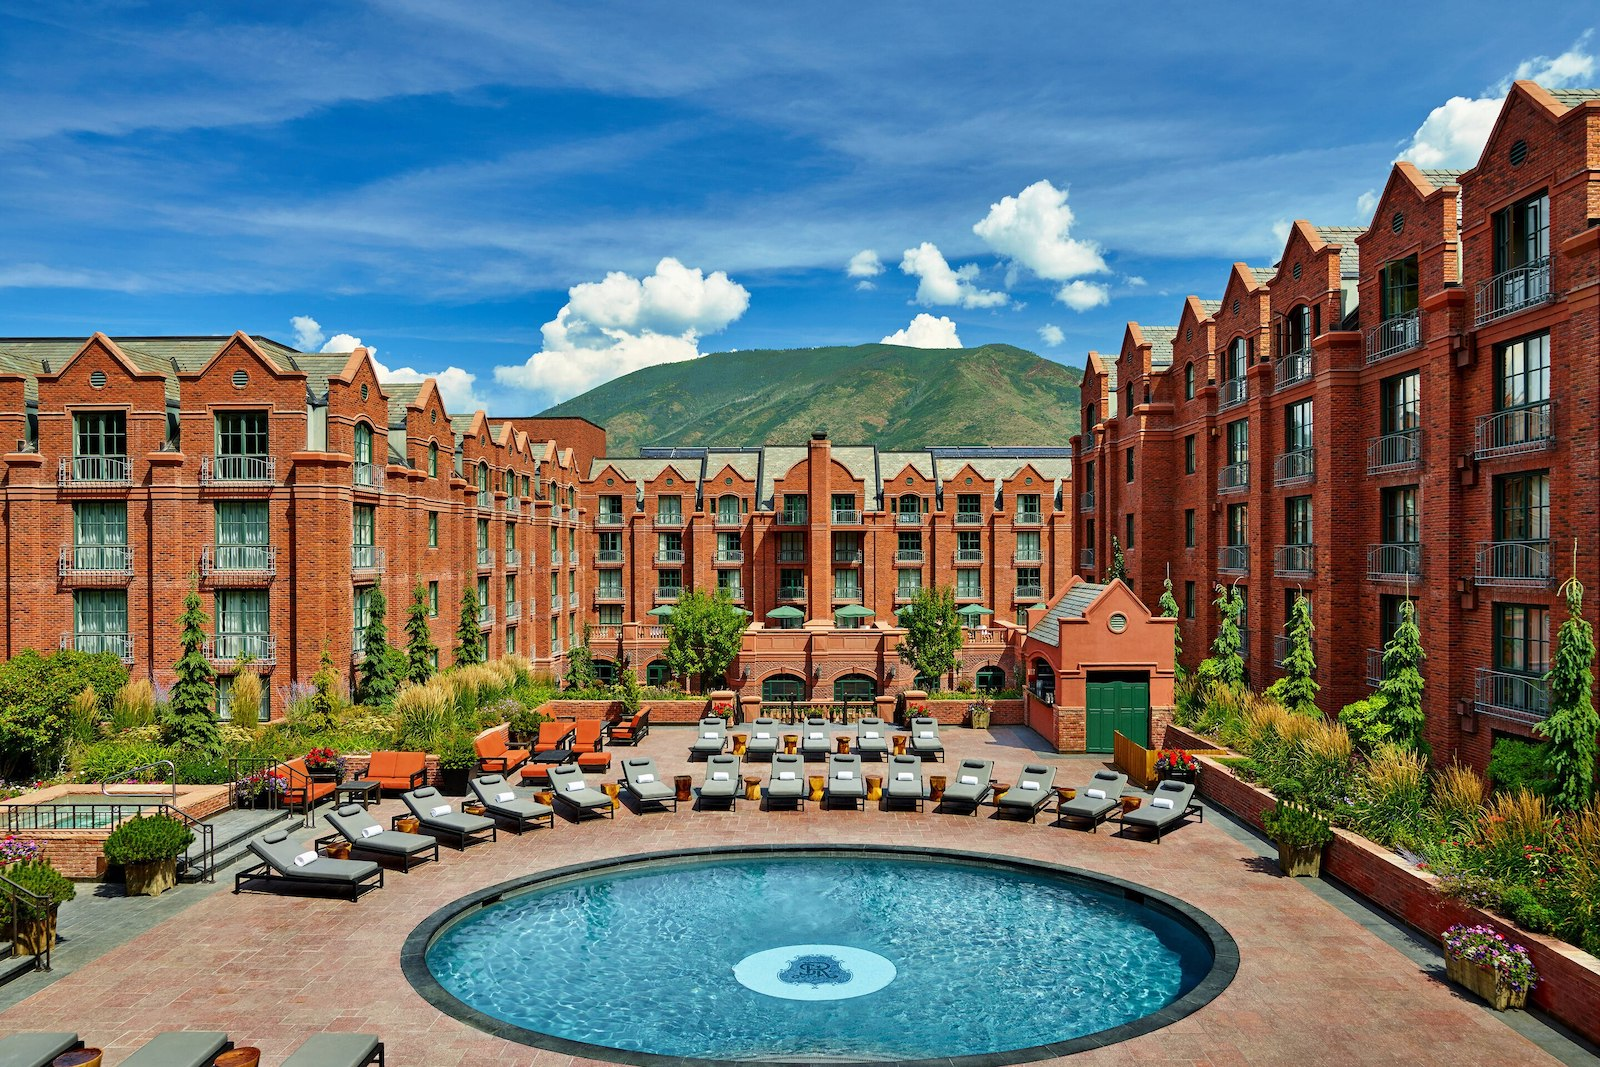 Image of the pool at the St. Regis in Aspen, Colorado